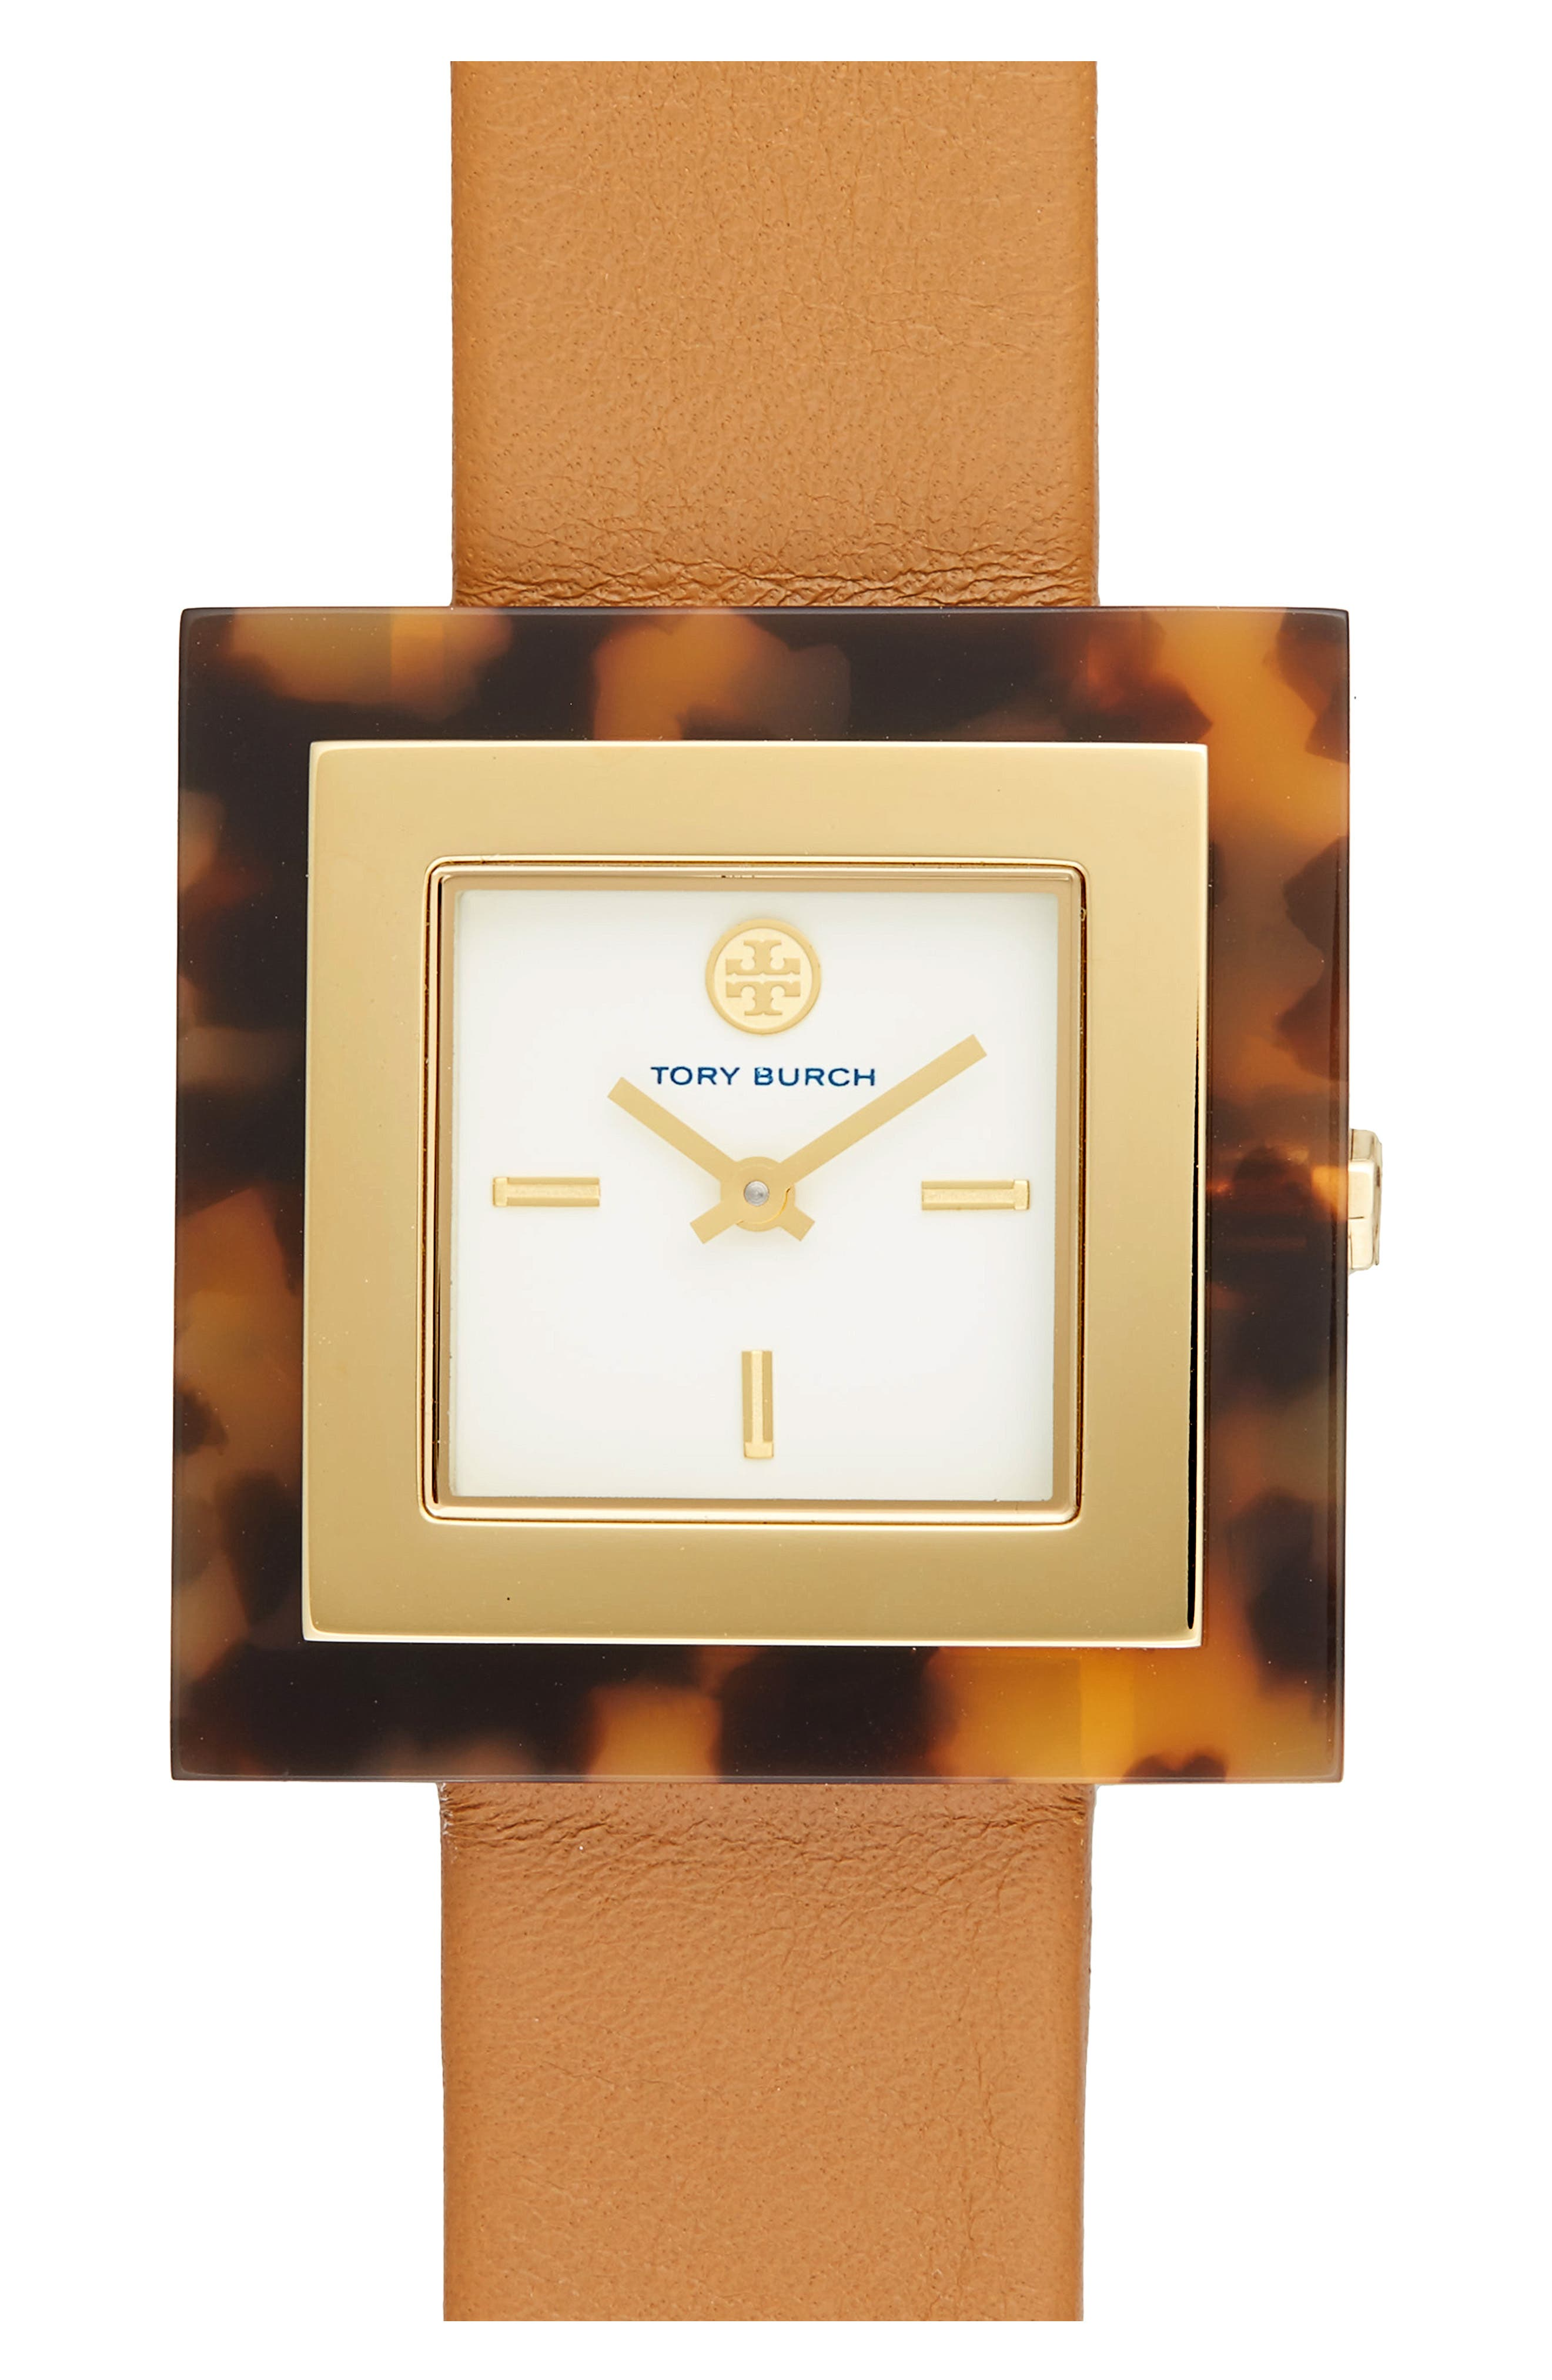 Main Image - Tory Burch Sedgwick Square Leather Strap Watch, 33mm x 33mm